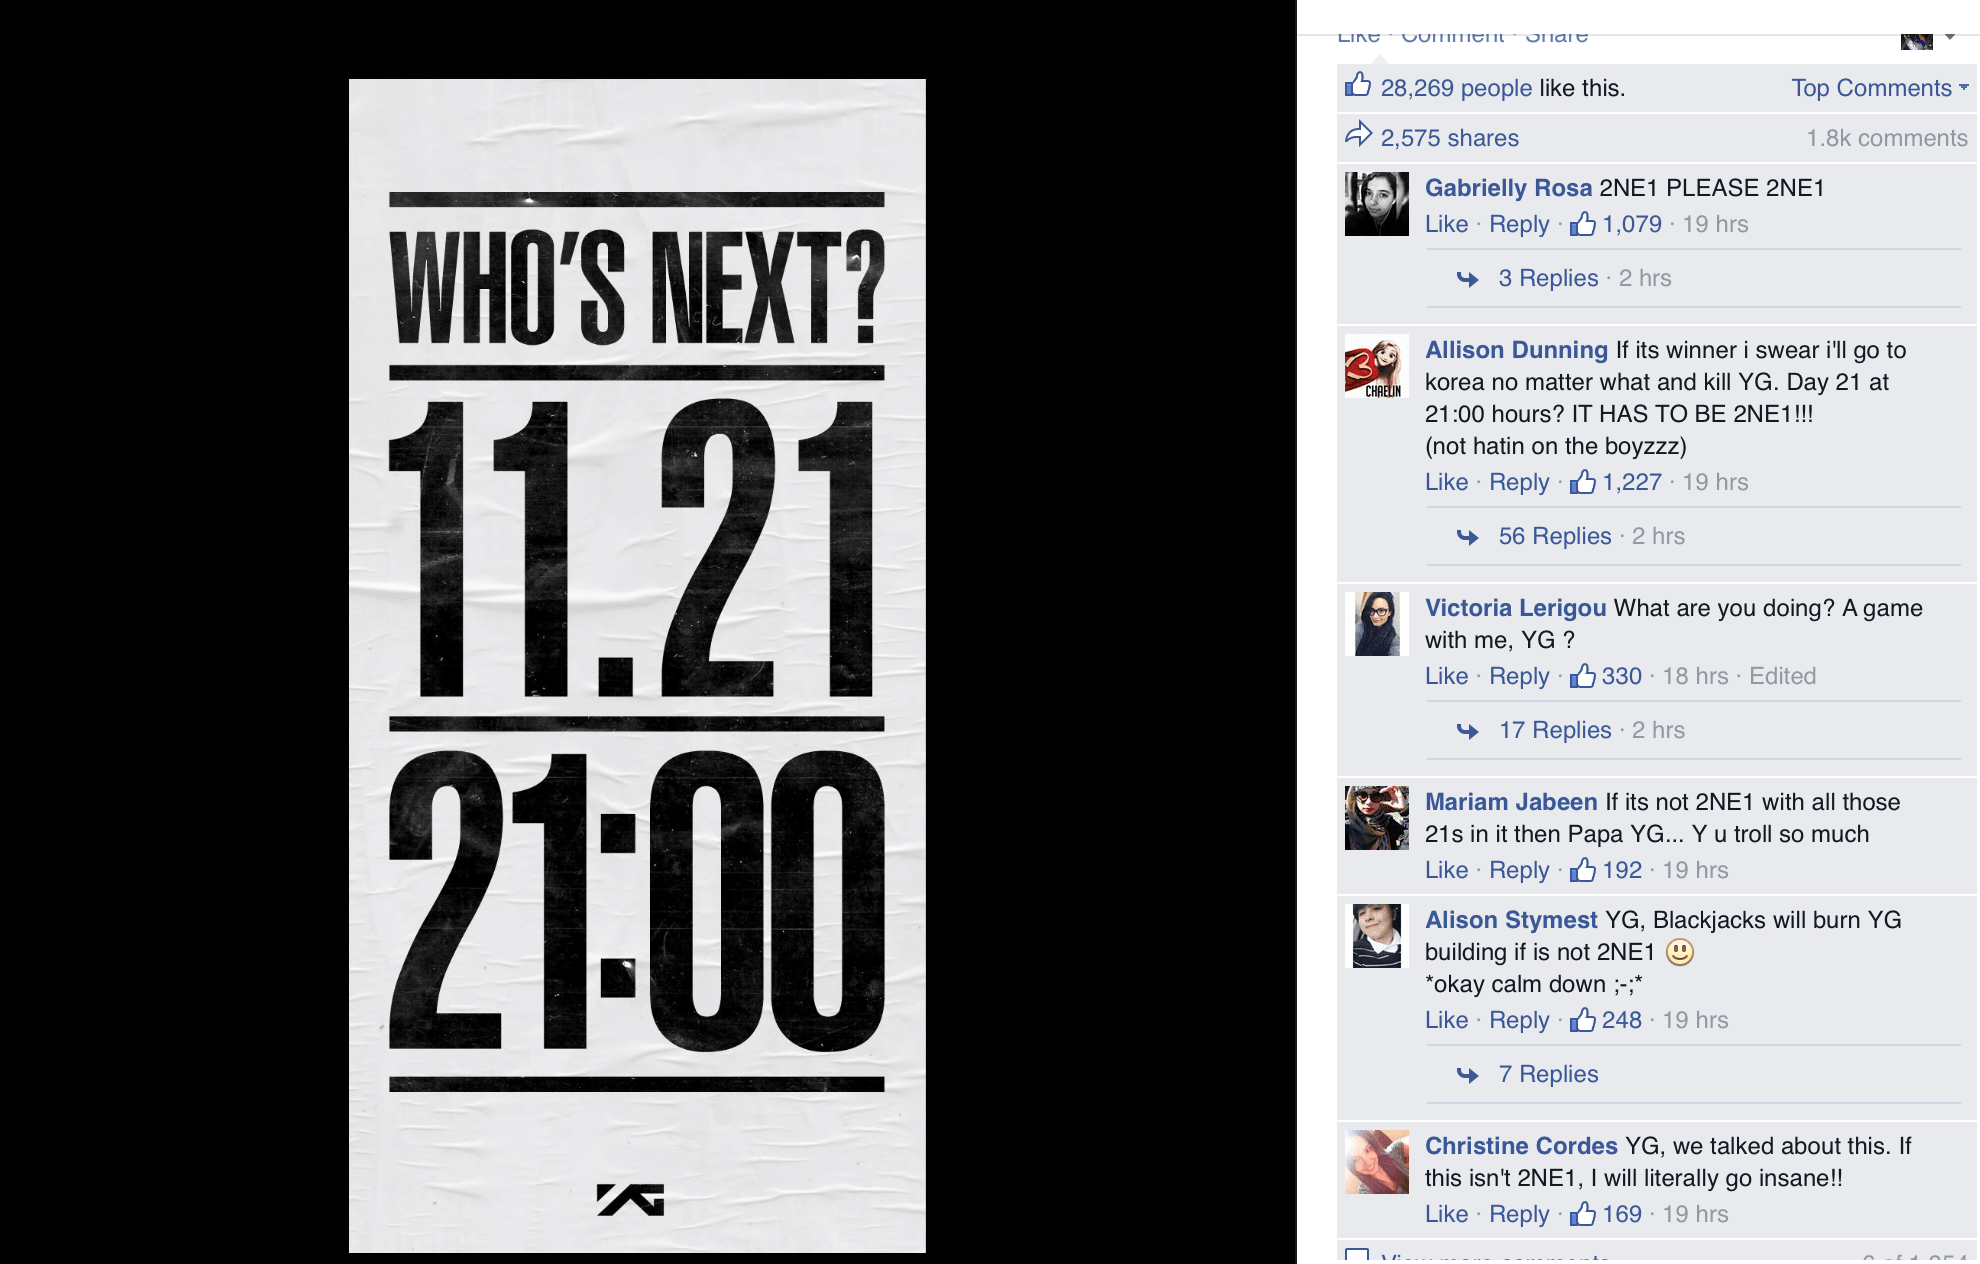 Image: YG Entertainment's Facebook